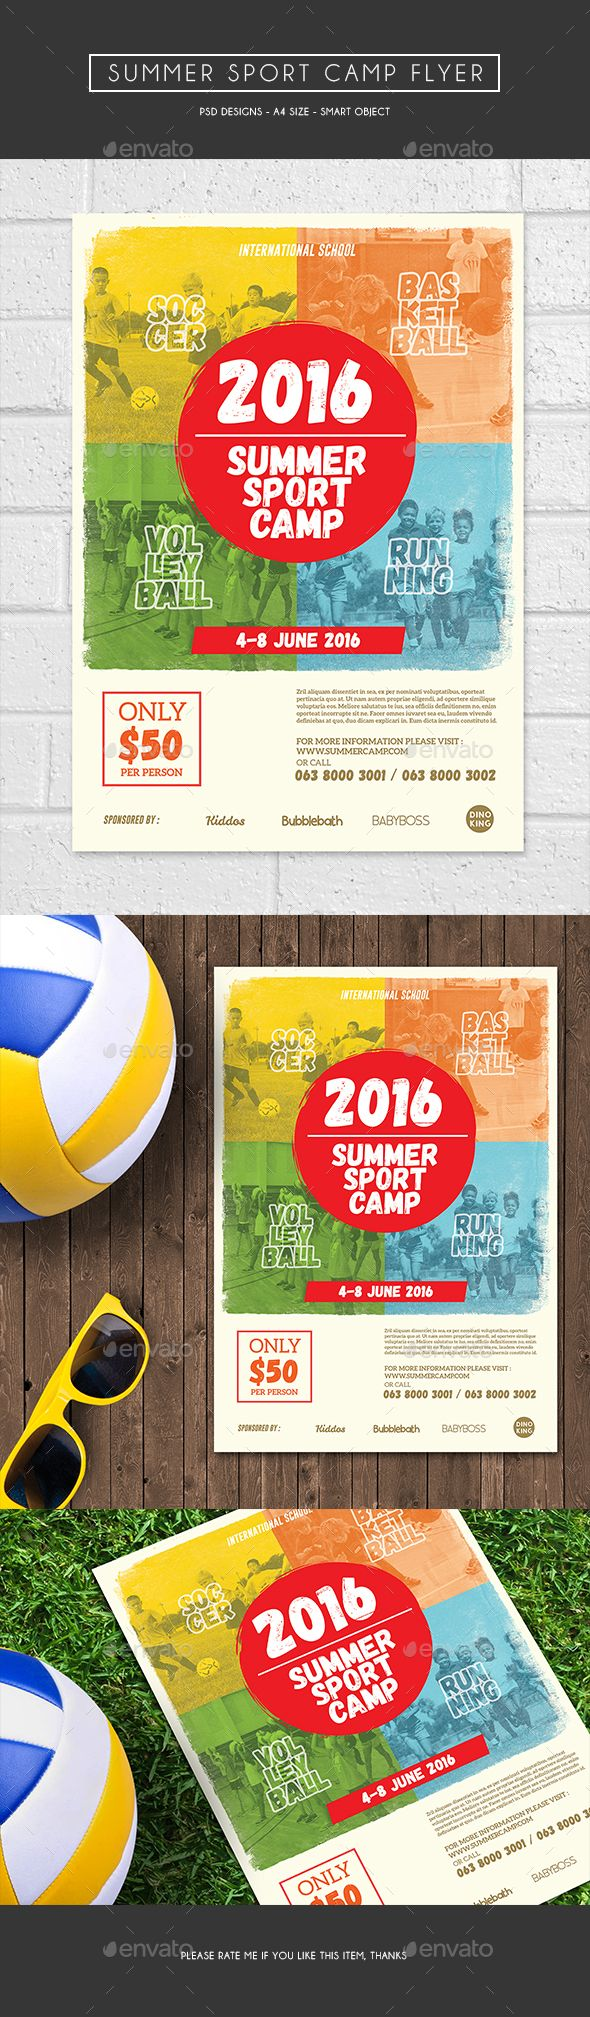 Summer Sport Camp Flyer Template PSD. Download here: http://graphicriver.net/item/summer-sport-camp-flyer/16030018?ref=ksioks